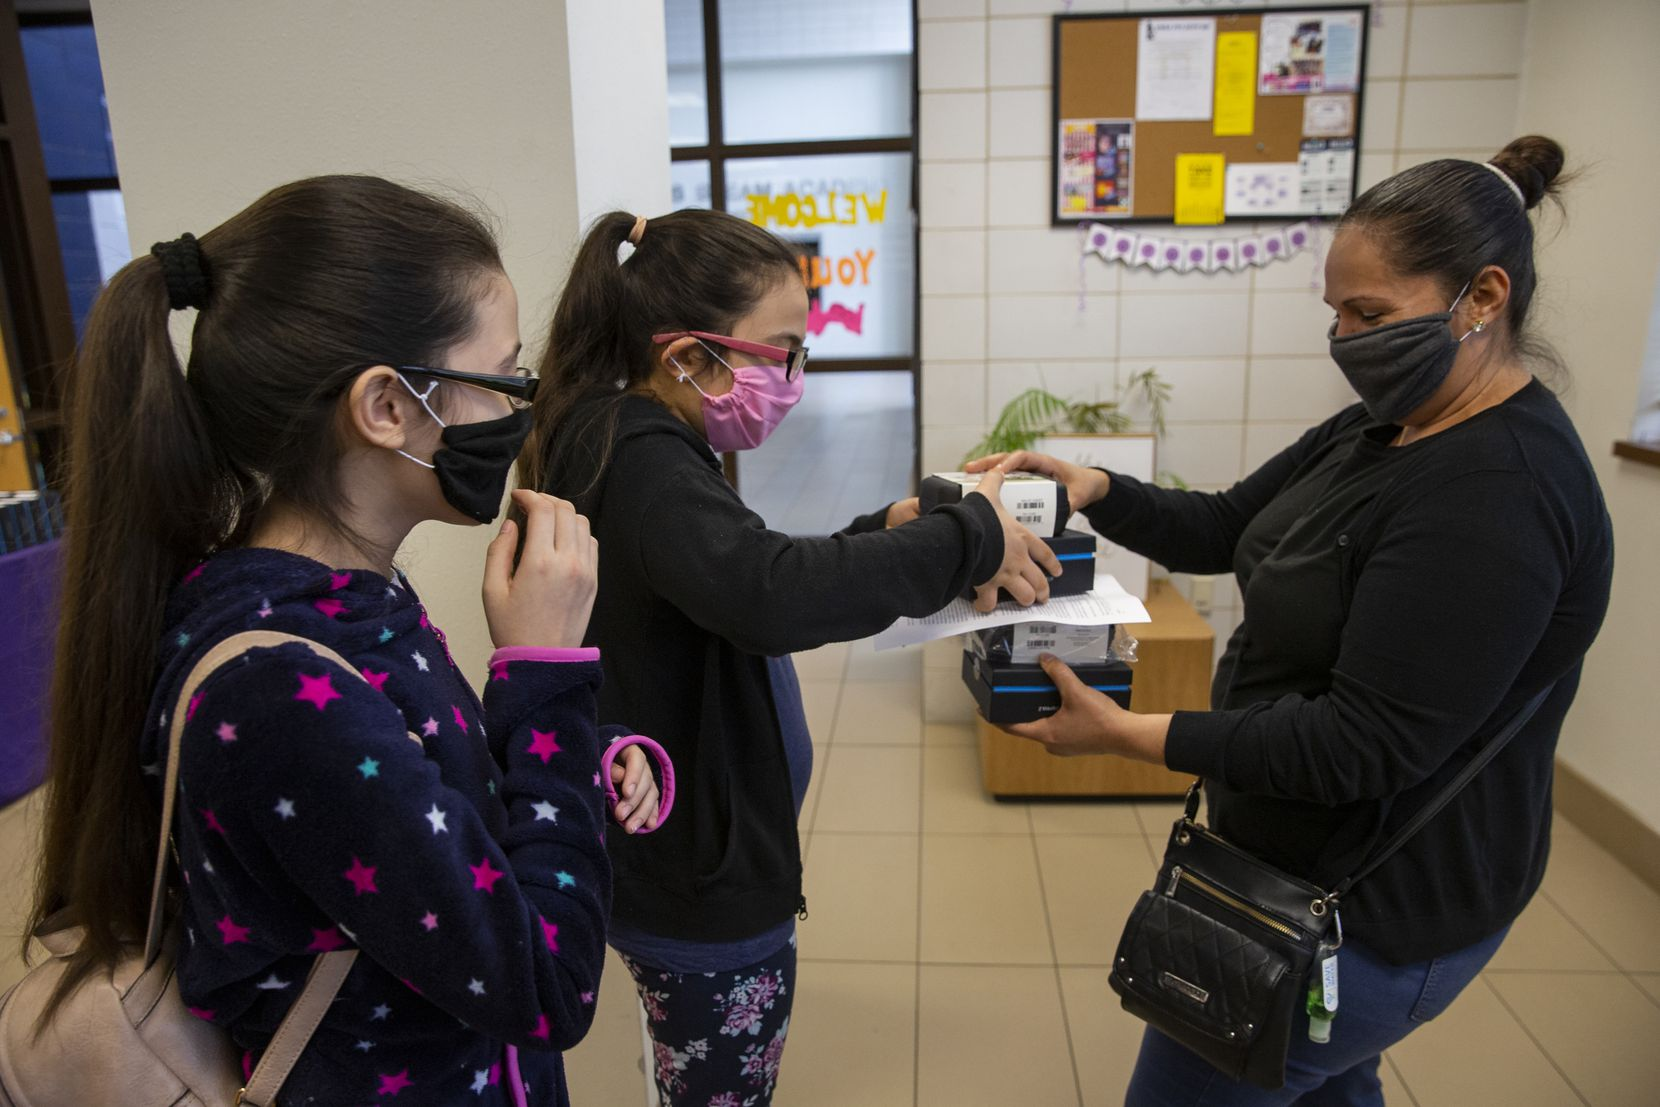 Adlemi Morales (left), 13, and Emeline Morales, 11, grab Wi-Fi hotspots provided by DISD from their mom Imelda Tinajero at Young Women's STEAM Academy at Balch Springs in Dallas. The girls were using their neighbors' Wi-Fi to complete homework.